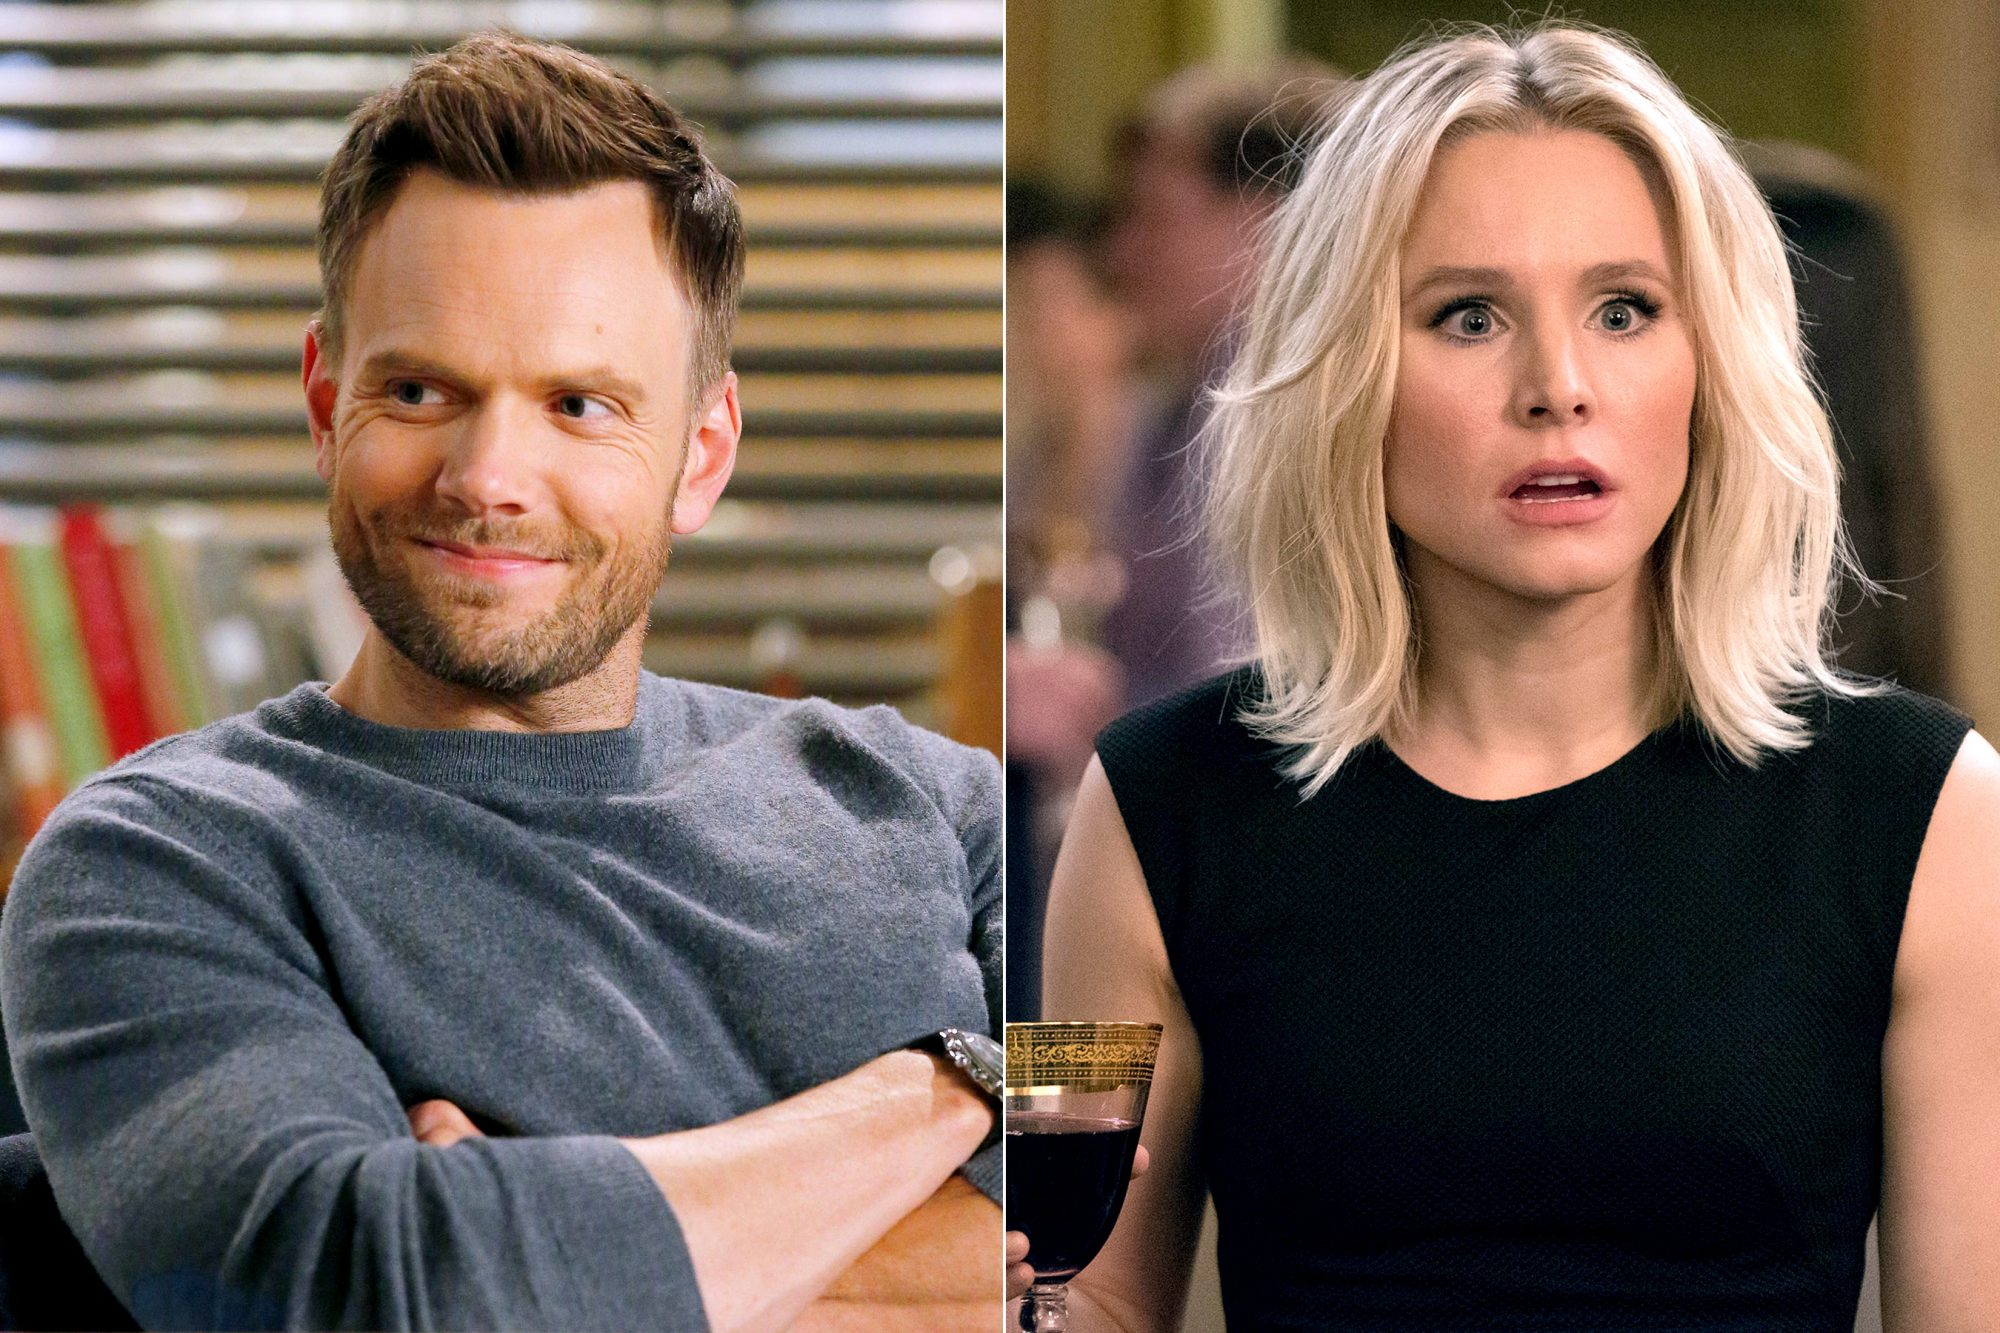 Community / The Good Place